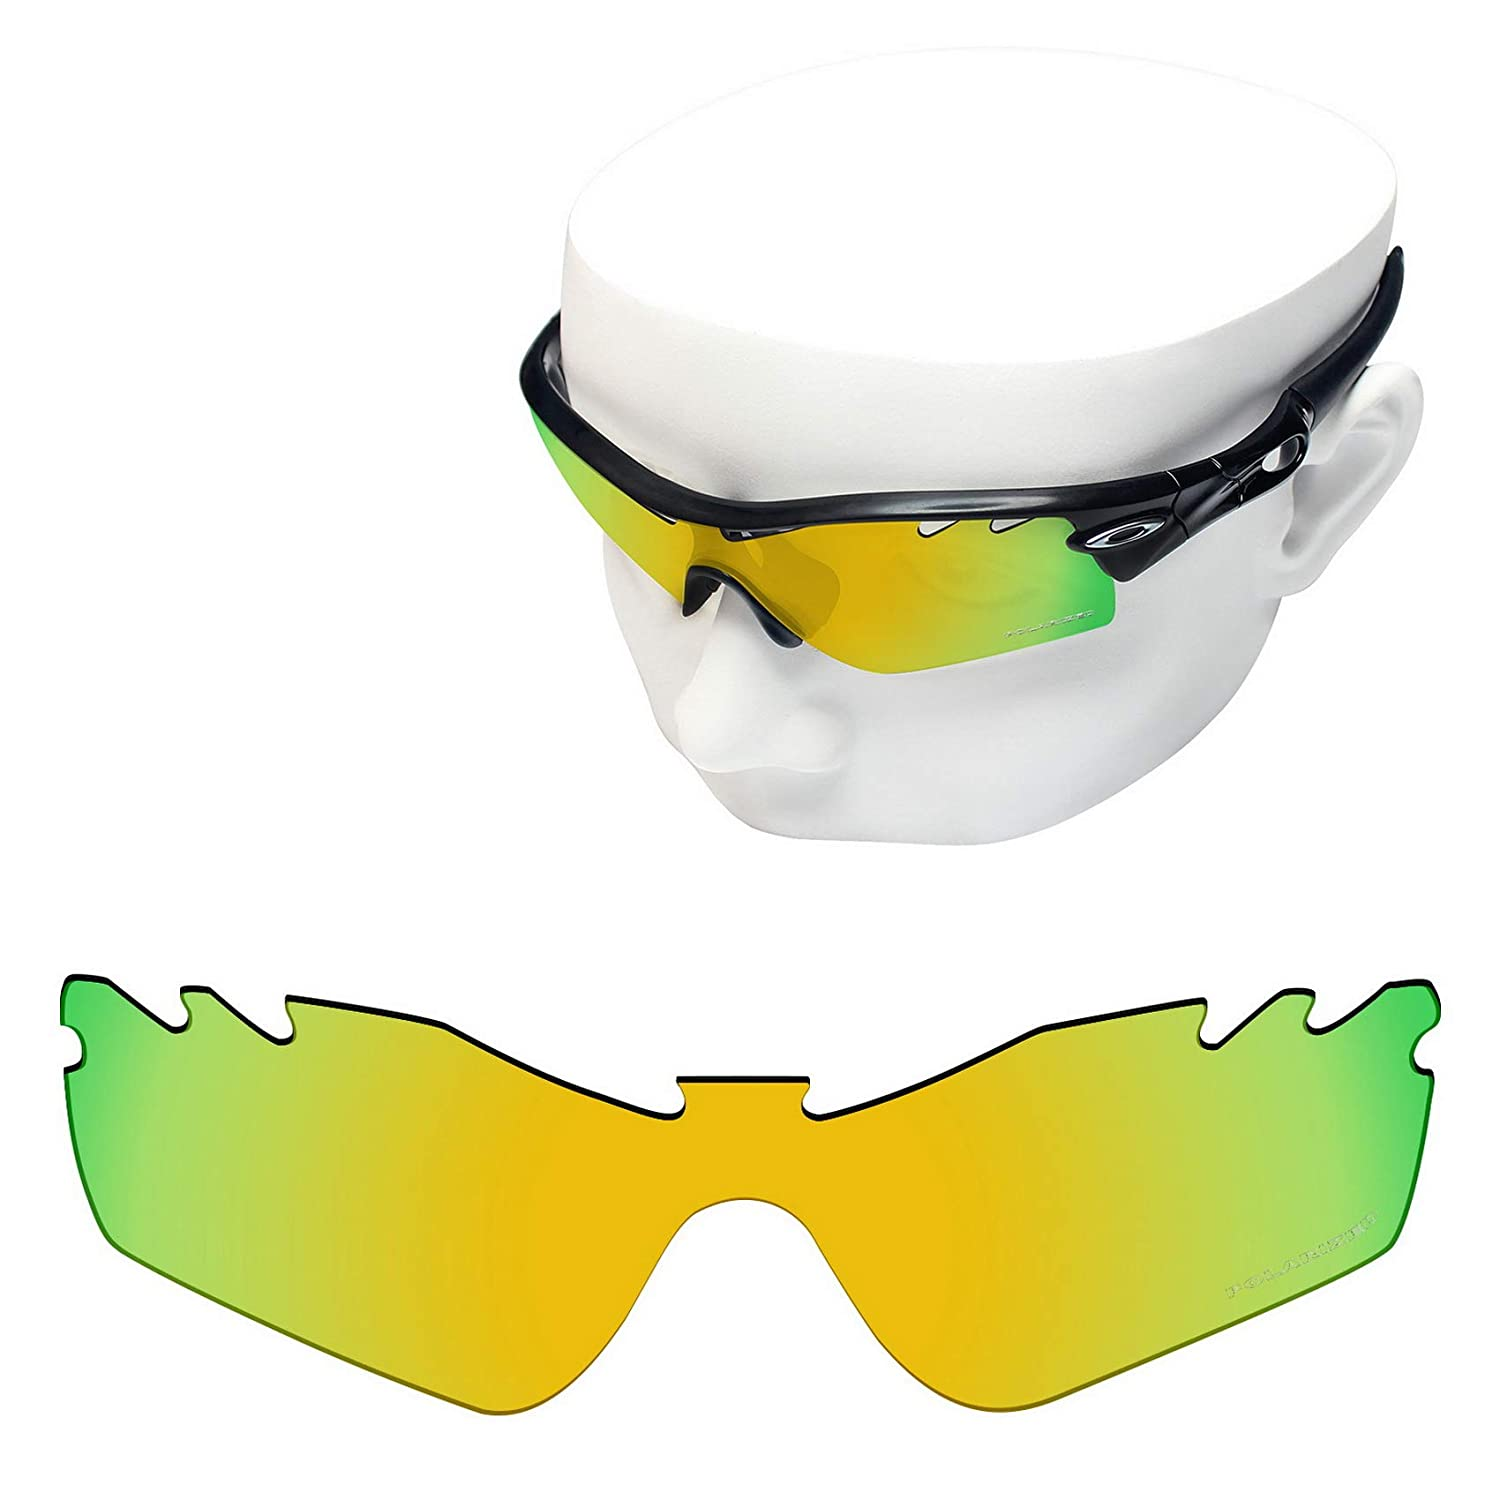 f1fce82082 Amazon.com  OOWLIT Replacement Lenses Compatible with Oakley Radar Path  Vented Sunglass 24K Combine8 Polarized  Clothing